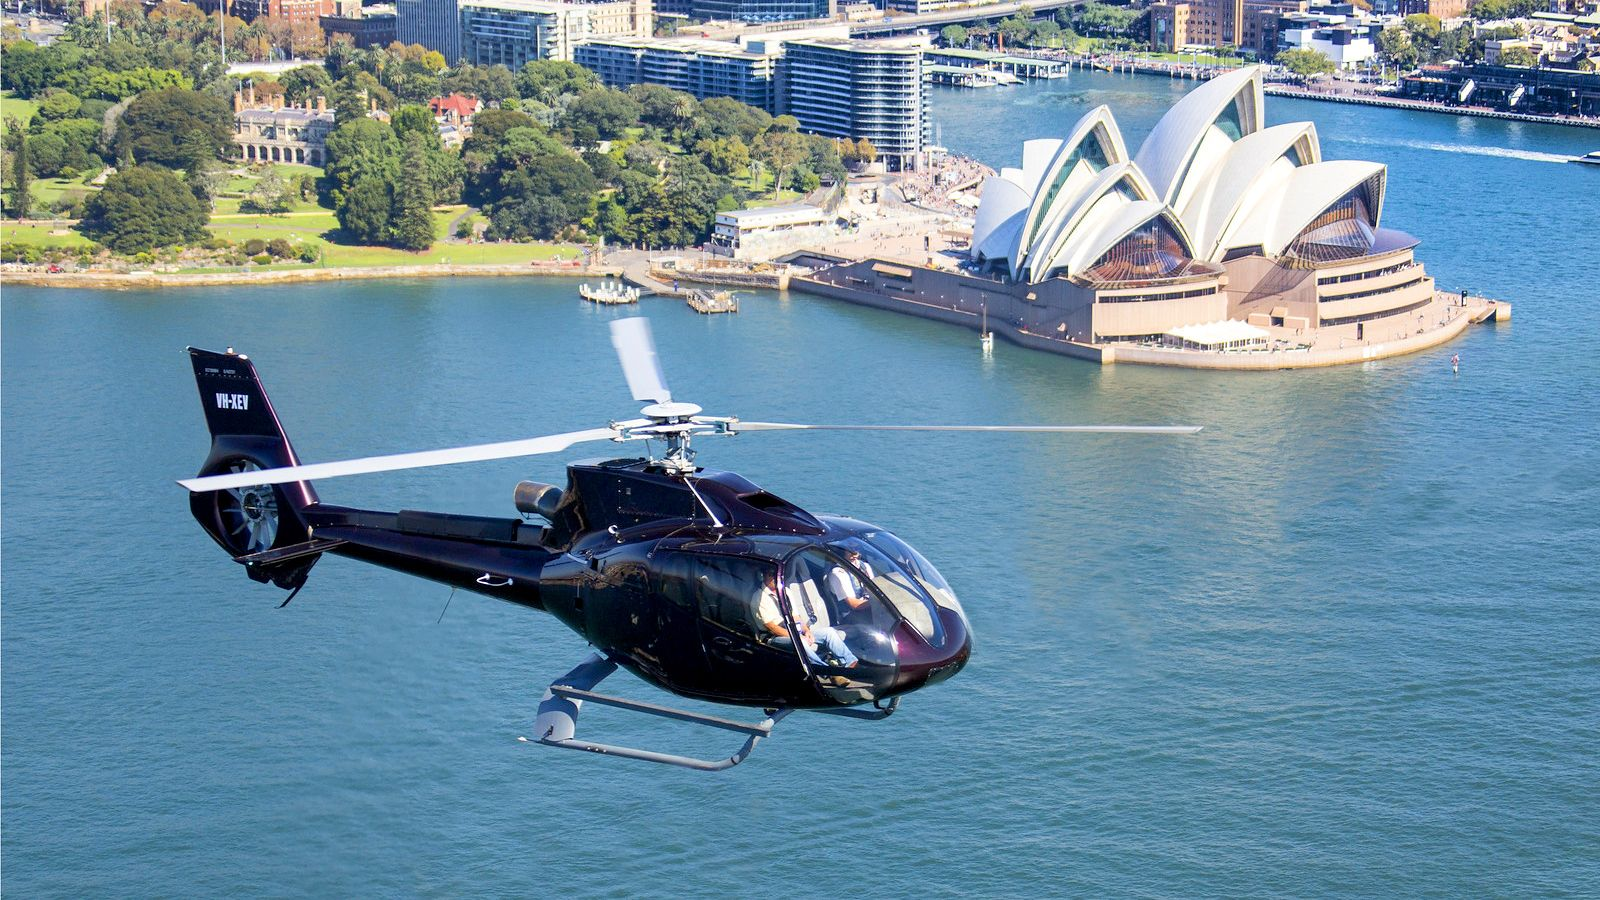 Helicopter on the Sydney Harbour Scenic Flight in Australia.